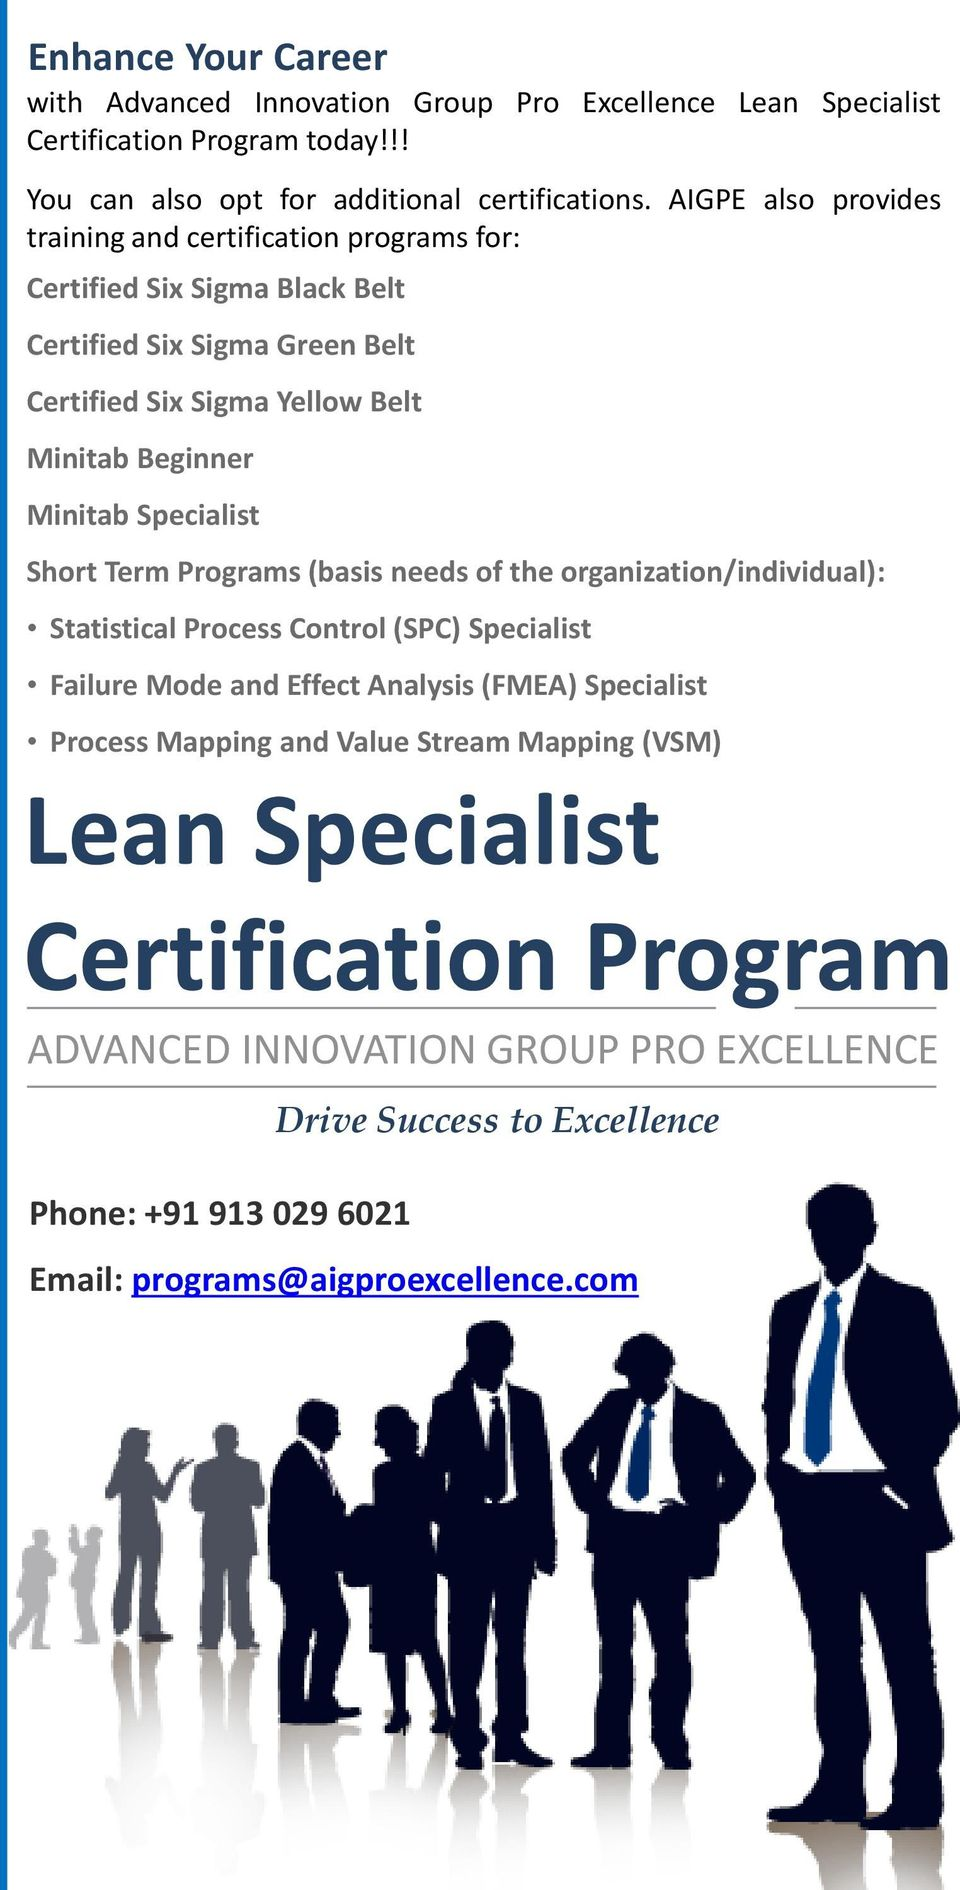 Specialist Short Term Programs (basis needs of the organization/individual): Statistical Process Control (SPC) Specialist Failure Mode and Effect Analysis (FMEA) Specialist Process